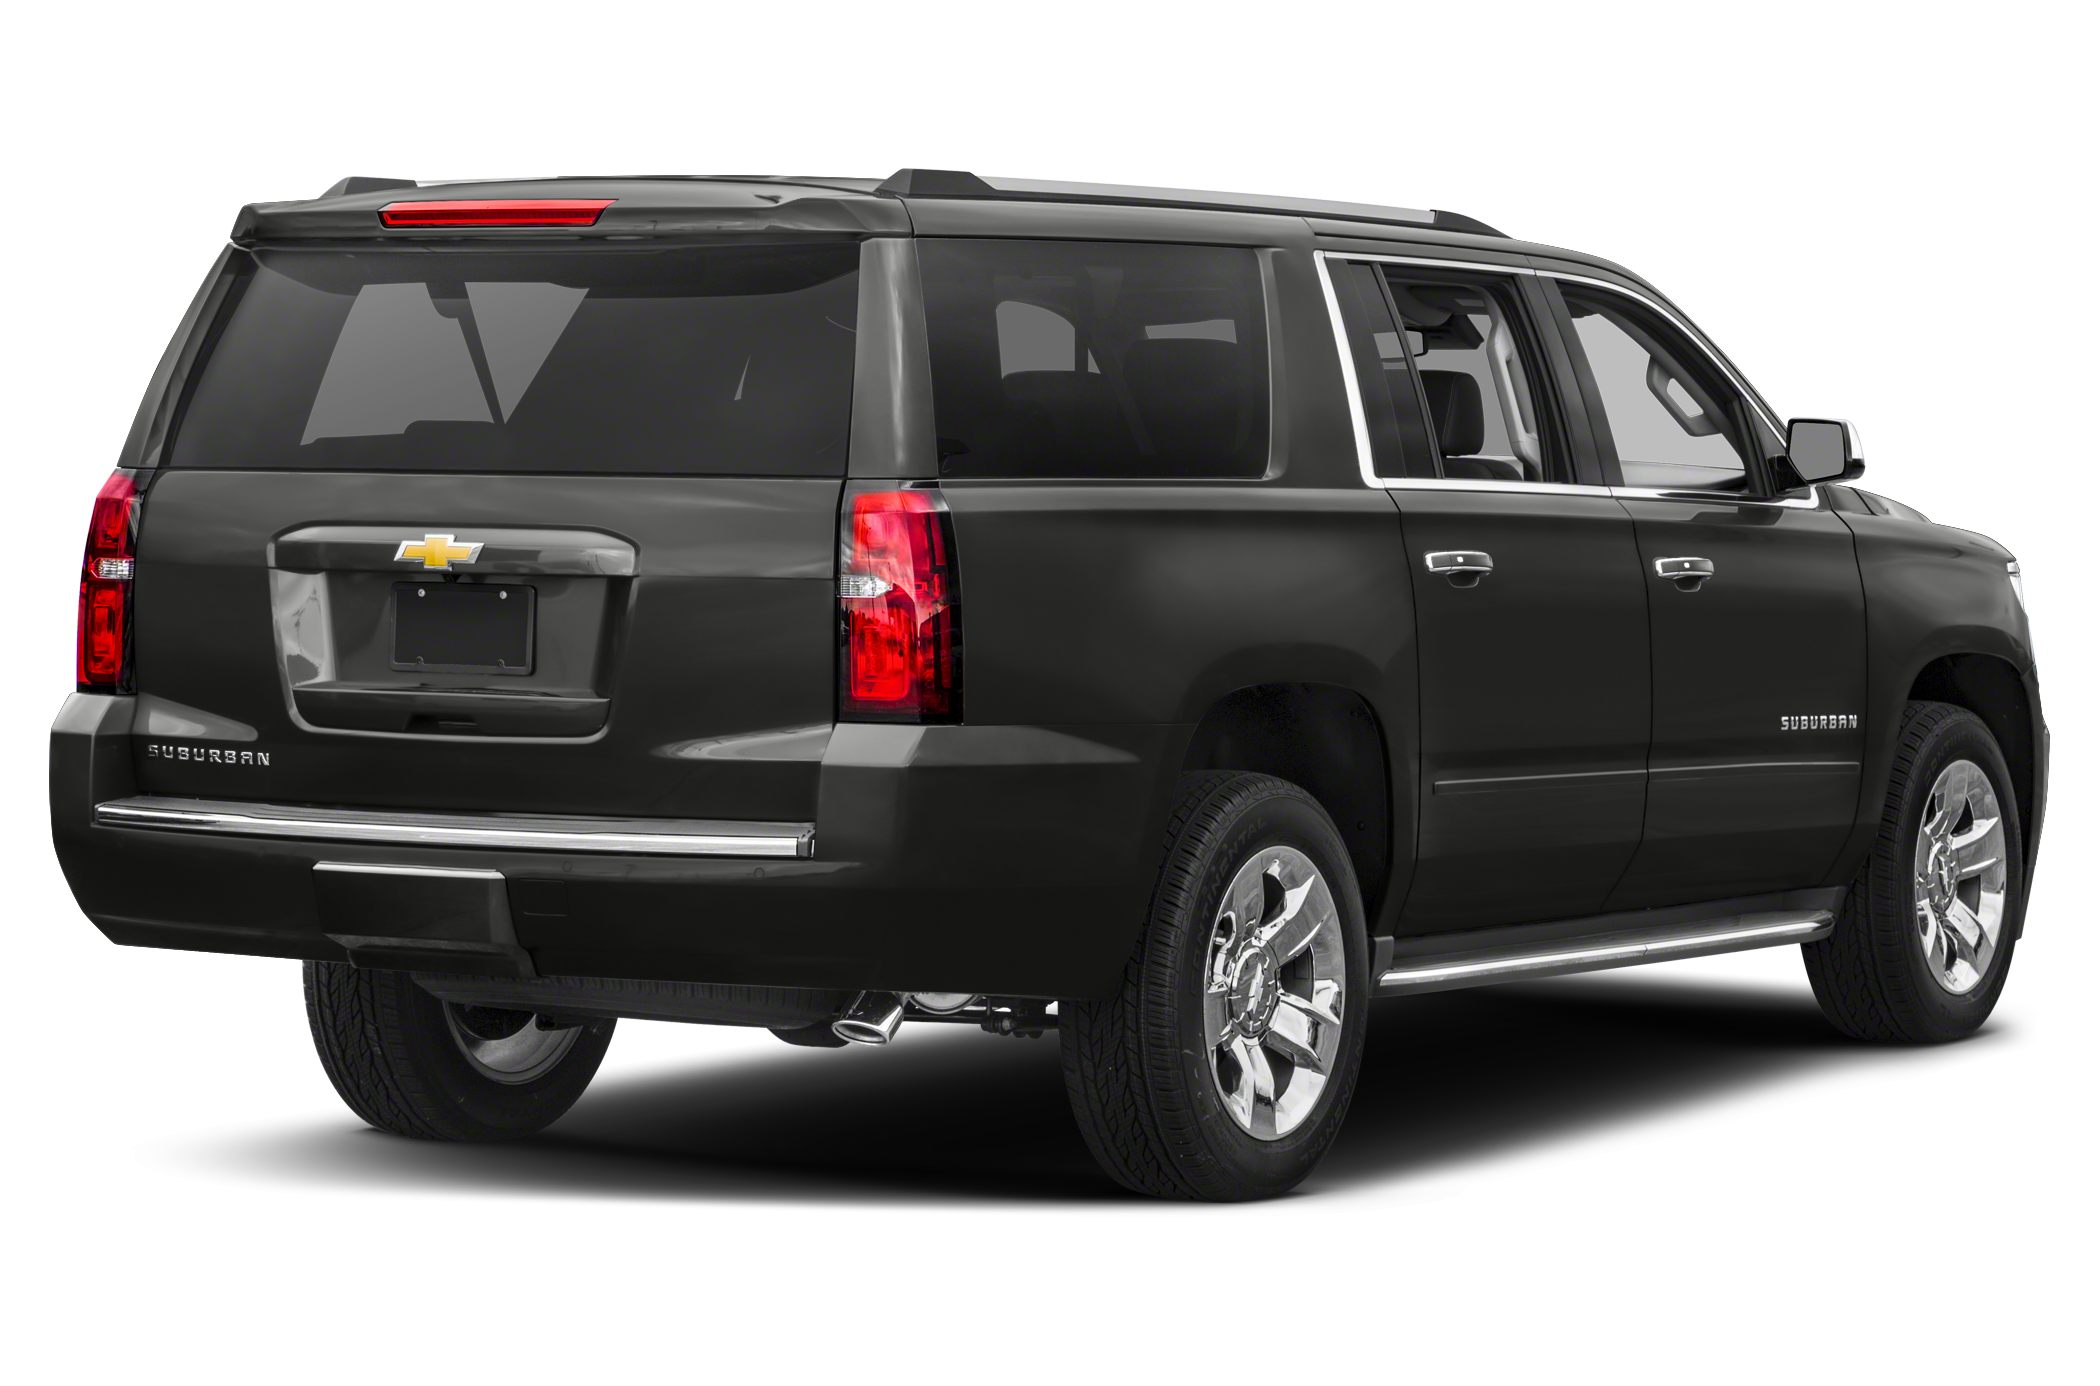 2017 Chevrolet Tahoe Ltz >> 2017 Chevrolet Suburban Reviews, Specs and Prices | Cars.com